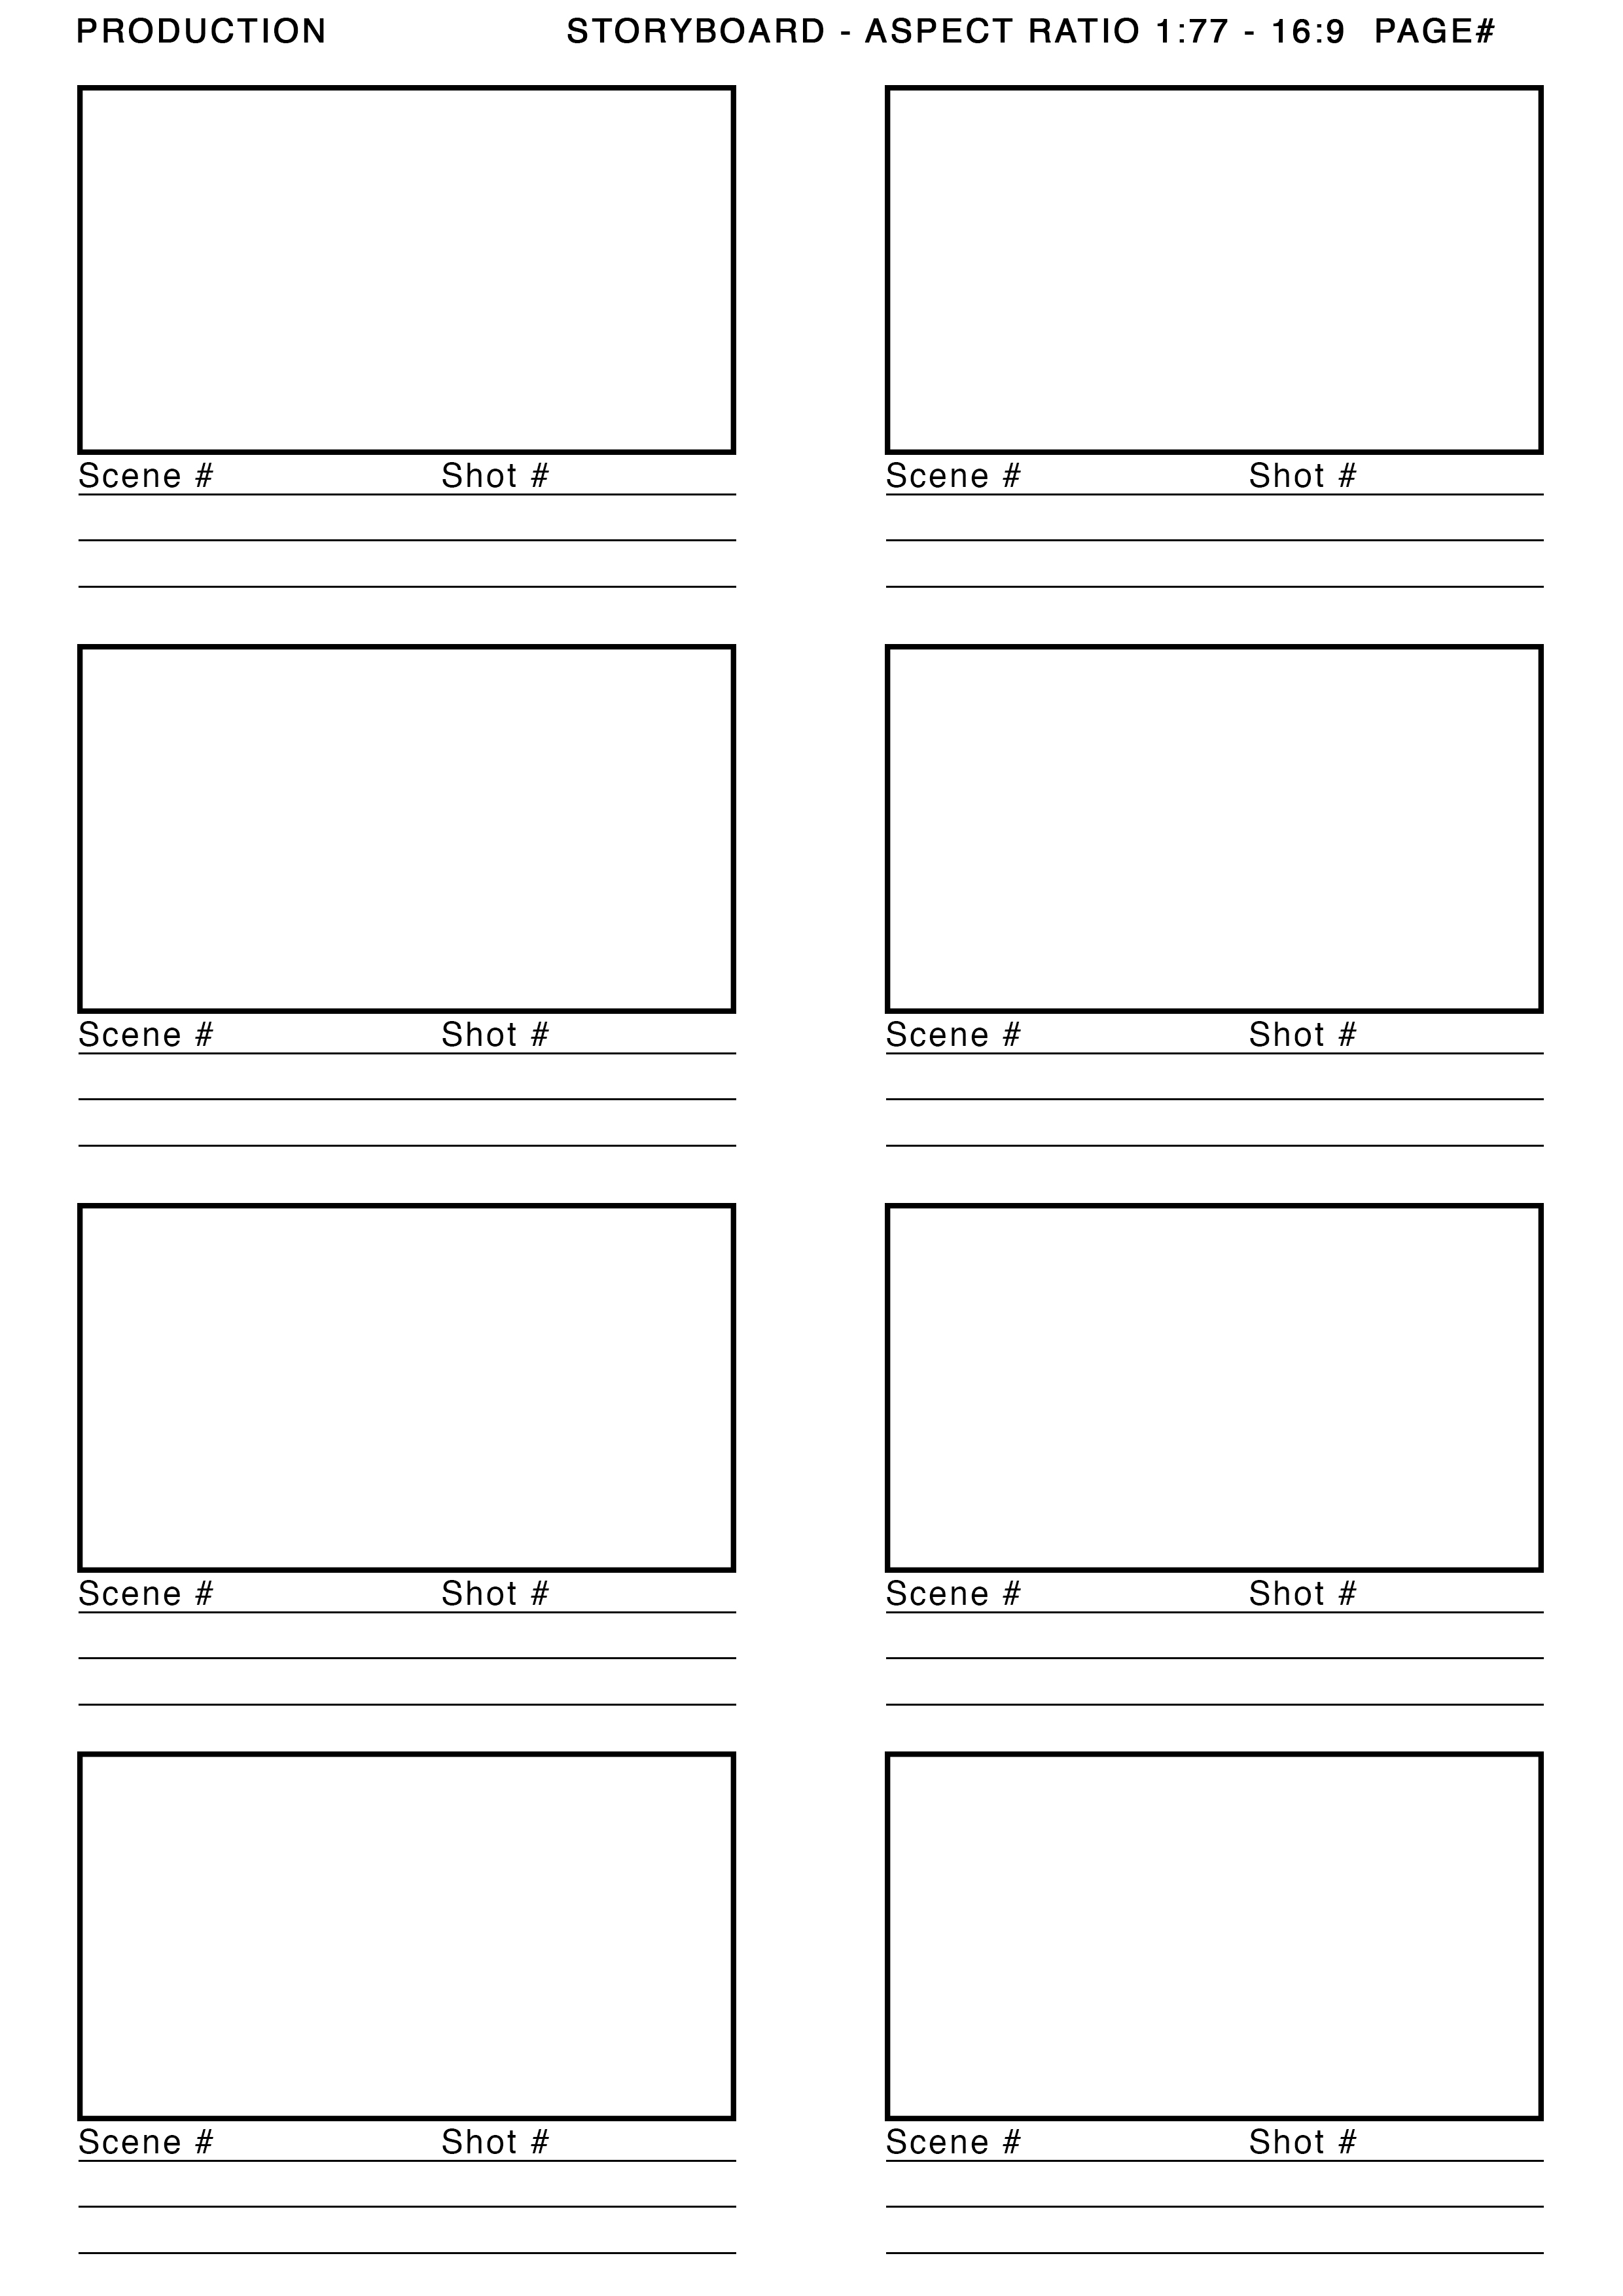 image gallery storyboard template 16 9